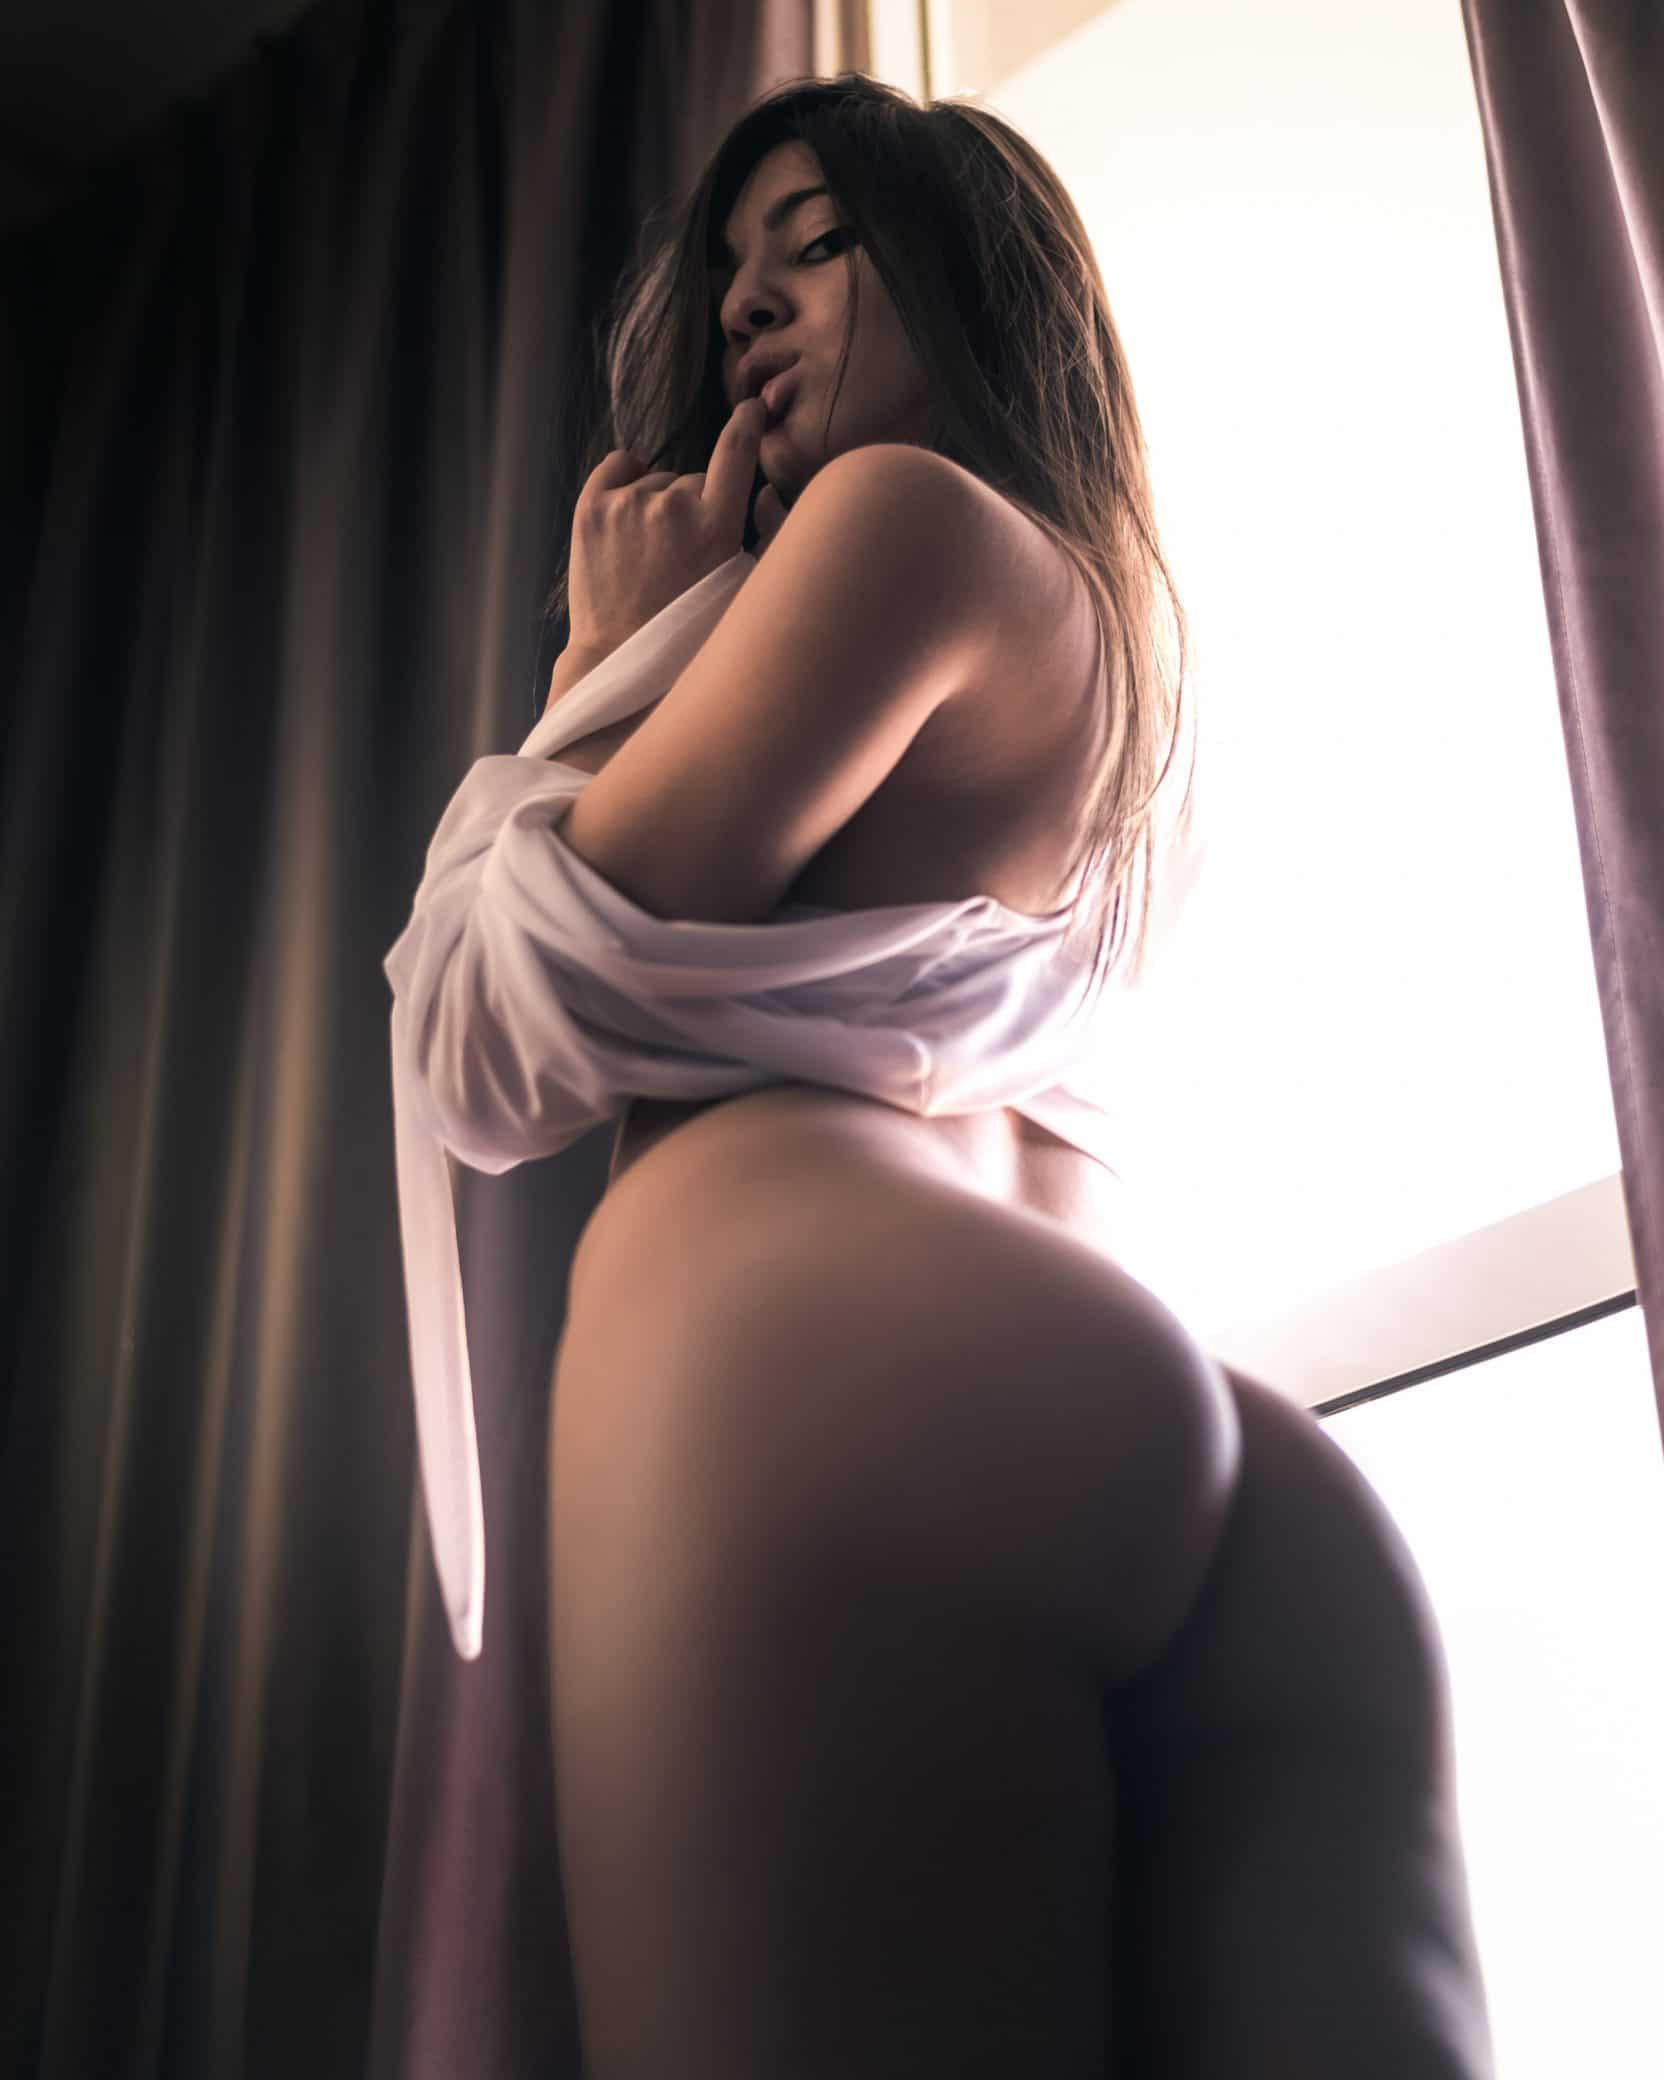 Beautiful nude Argentine model Micaela Ponce @miki.infinity only wearing a white shirt looking down showing her bare booty with her finger in her mouth in a boudoir photoshoot